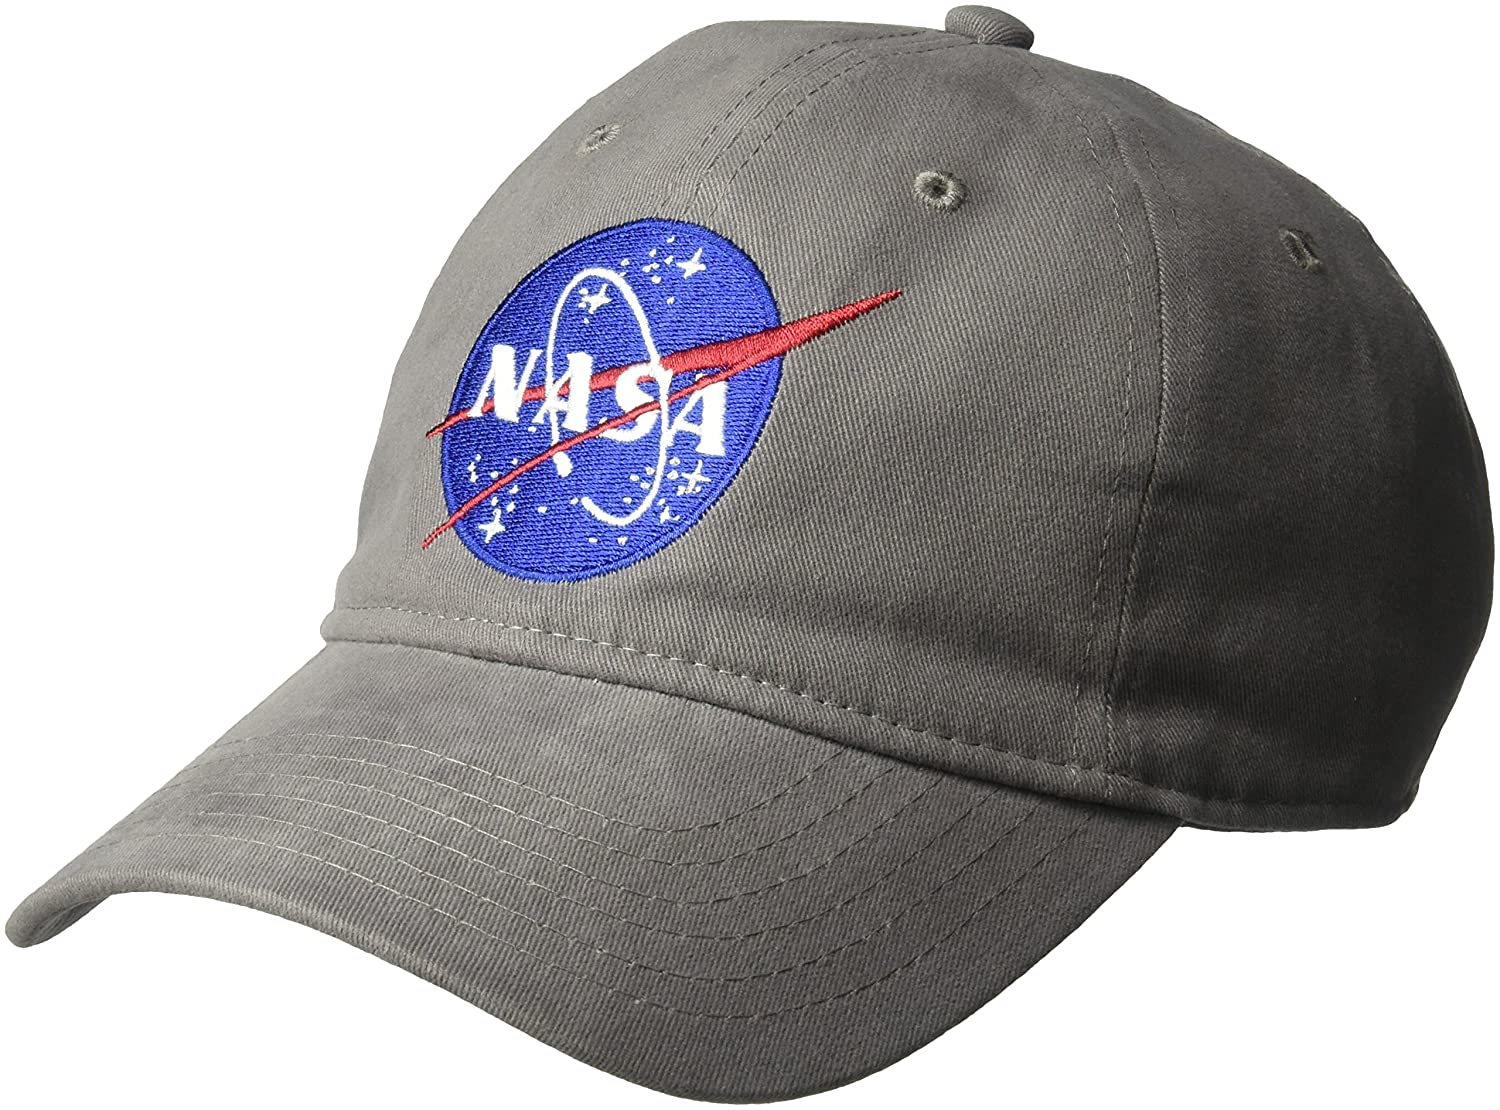 Concept One Men's NASA Washed Twill Baseball Cap, Adjustable, Grey, One Size CPNA2003AZ-020